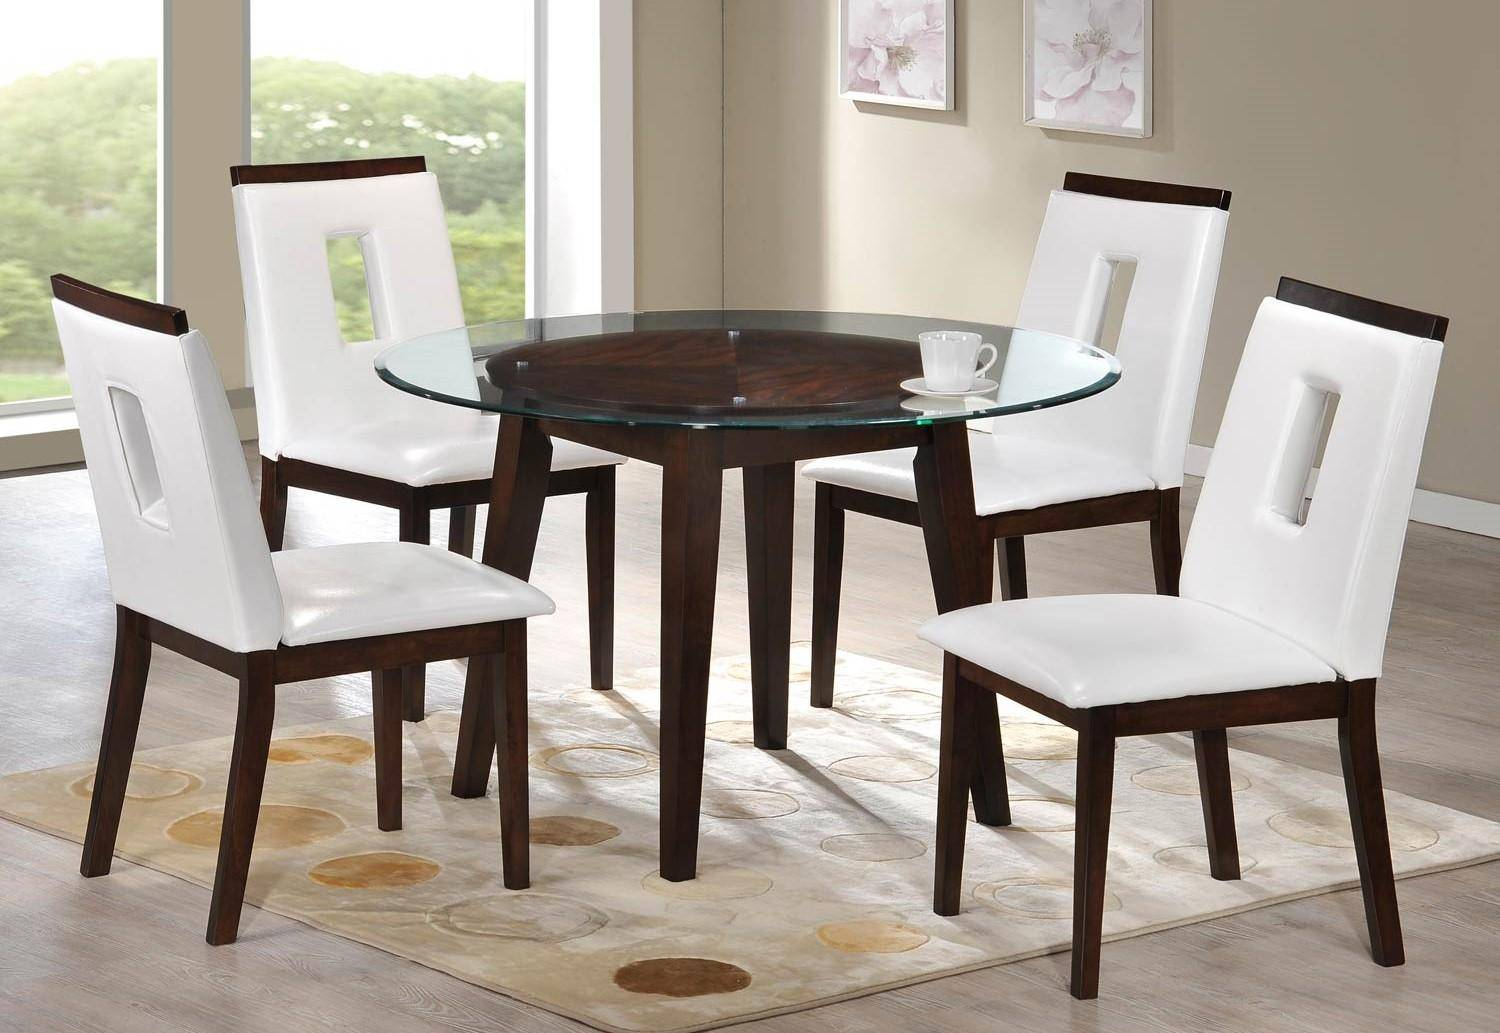 Excellent Myco Furniture Wegman Round Glass Top Table White Leather Pdpeps Interior Chair Design Pdpepsorg